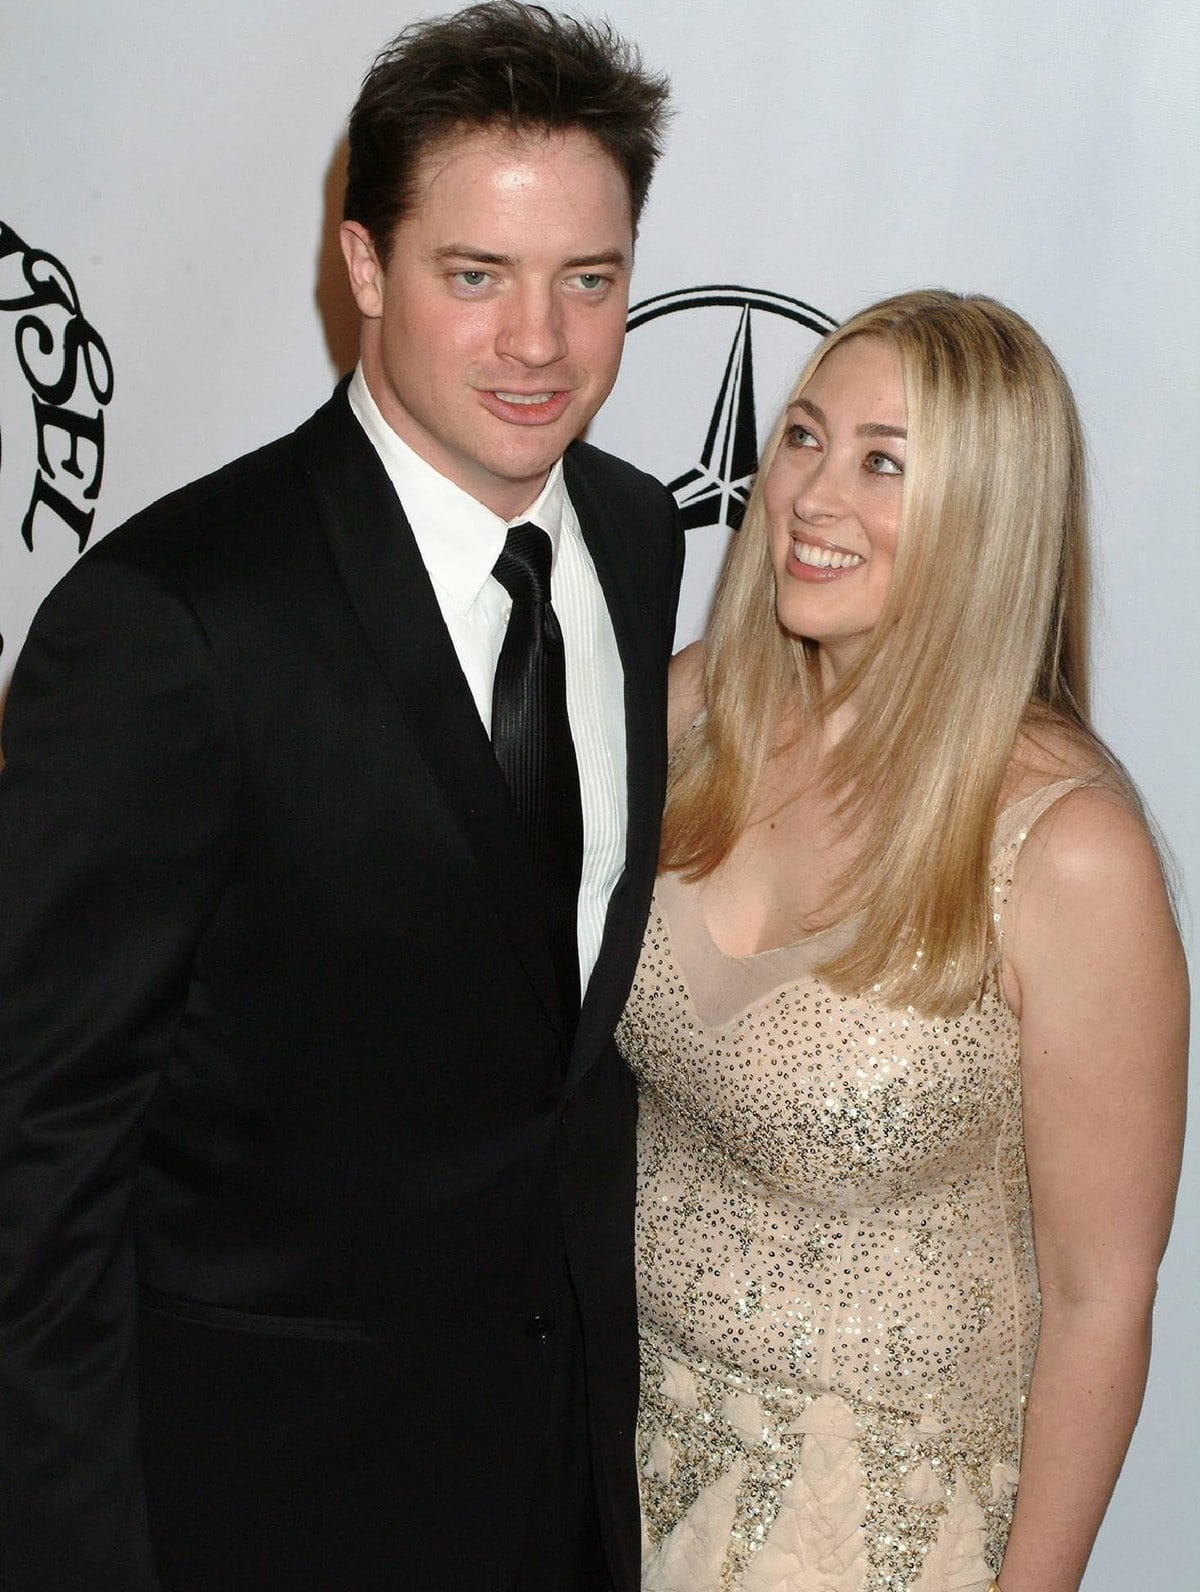 Brendan Fraser met his wife Afton Smith at Winona Ryder's 1993 Fourth of July celebration